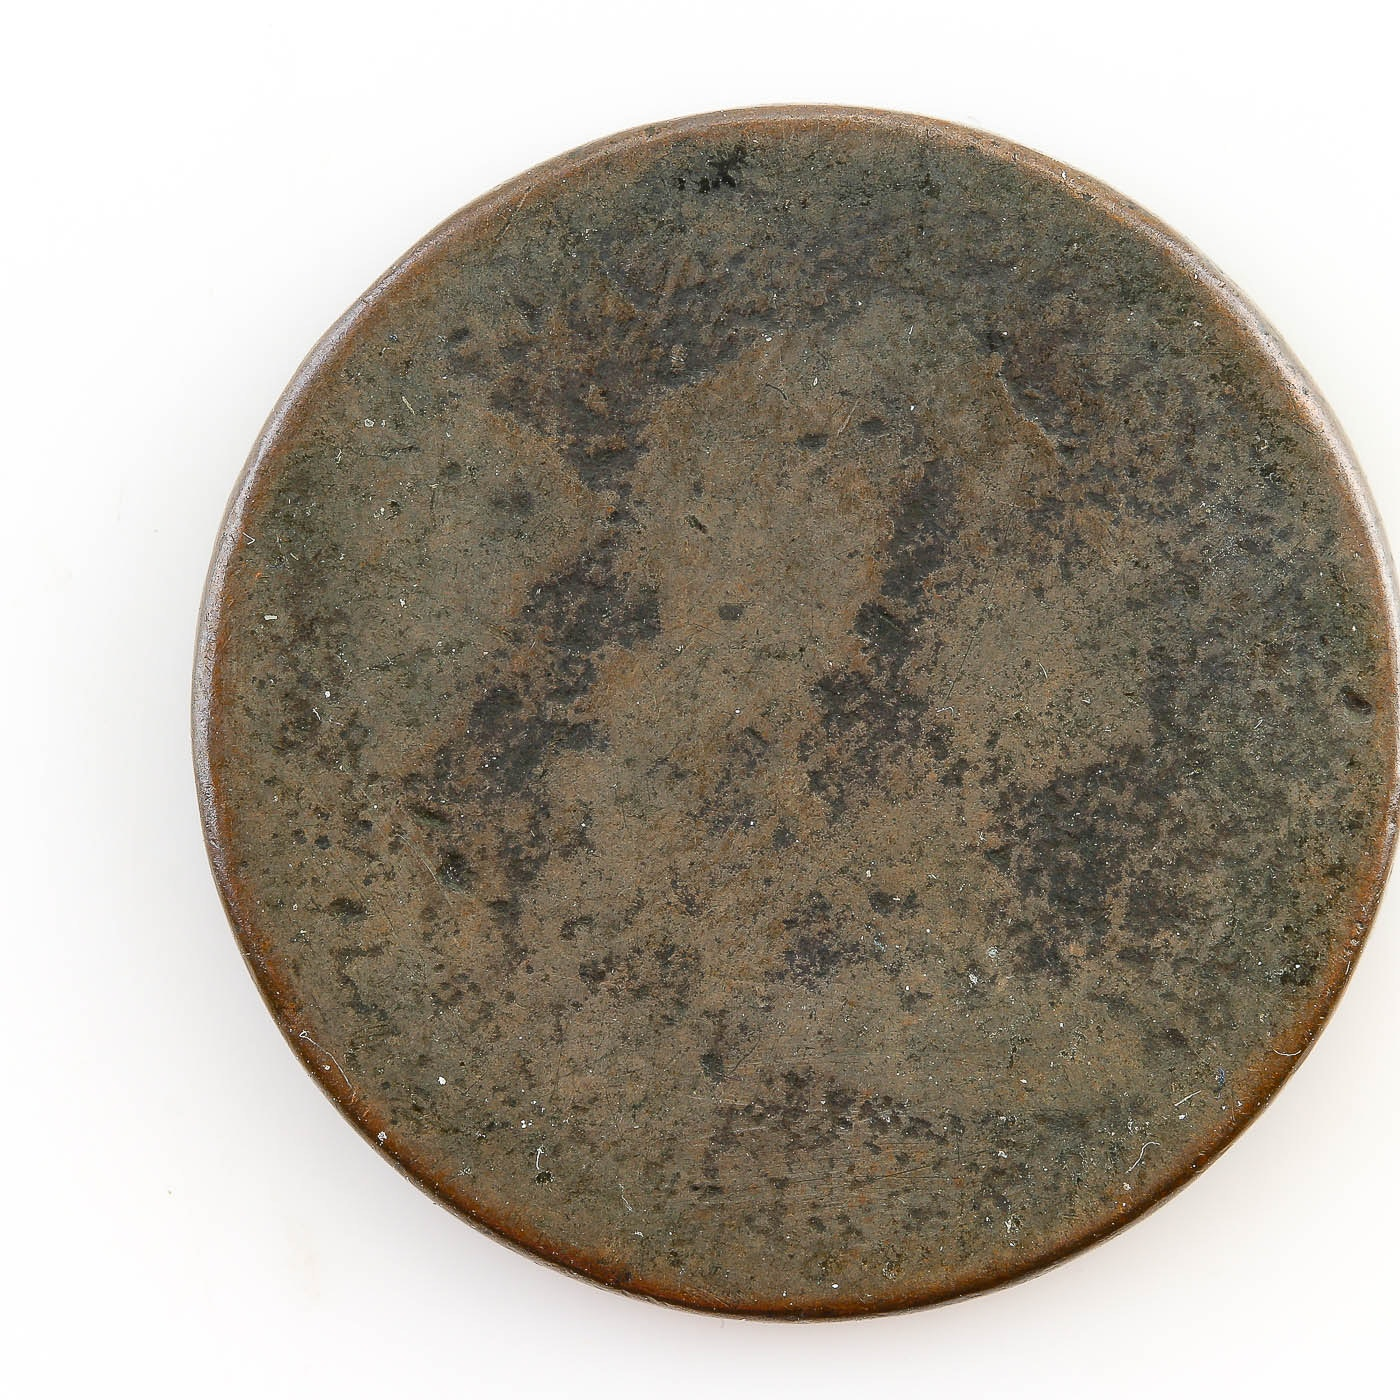 Very Low Mintage 1795 Liberty Cap Large Cent, Lettered Edge Variety